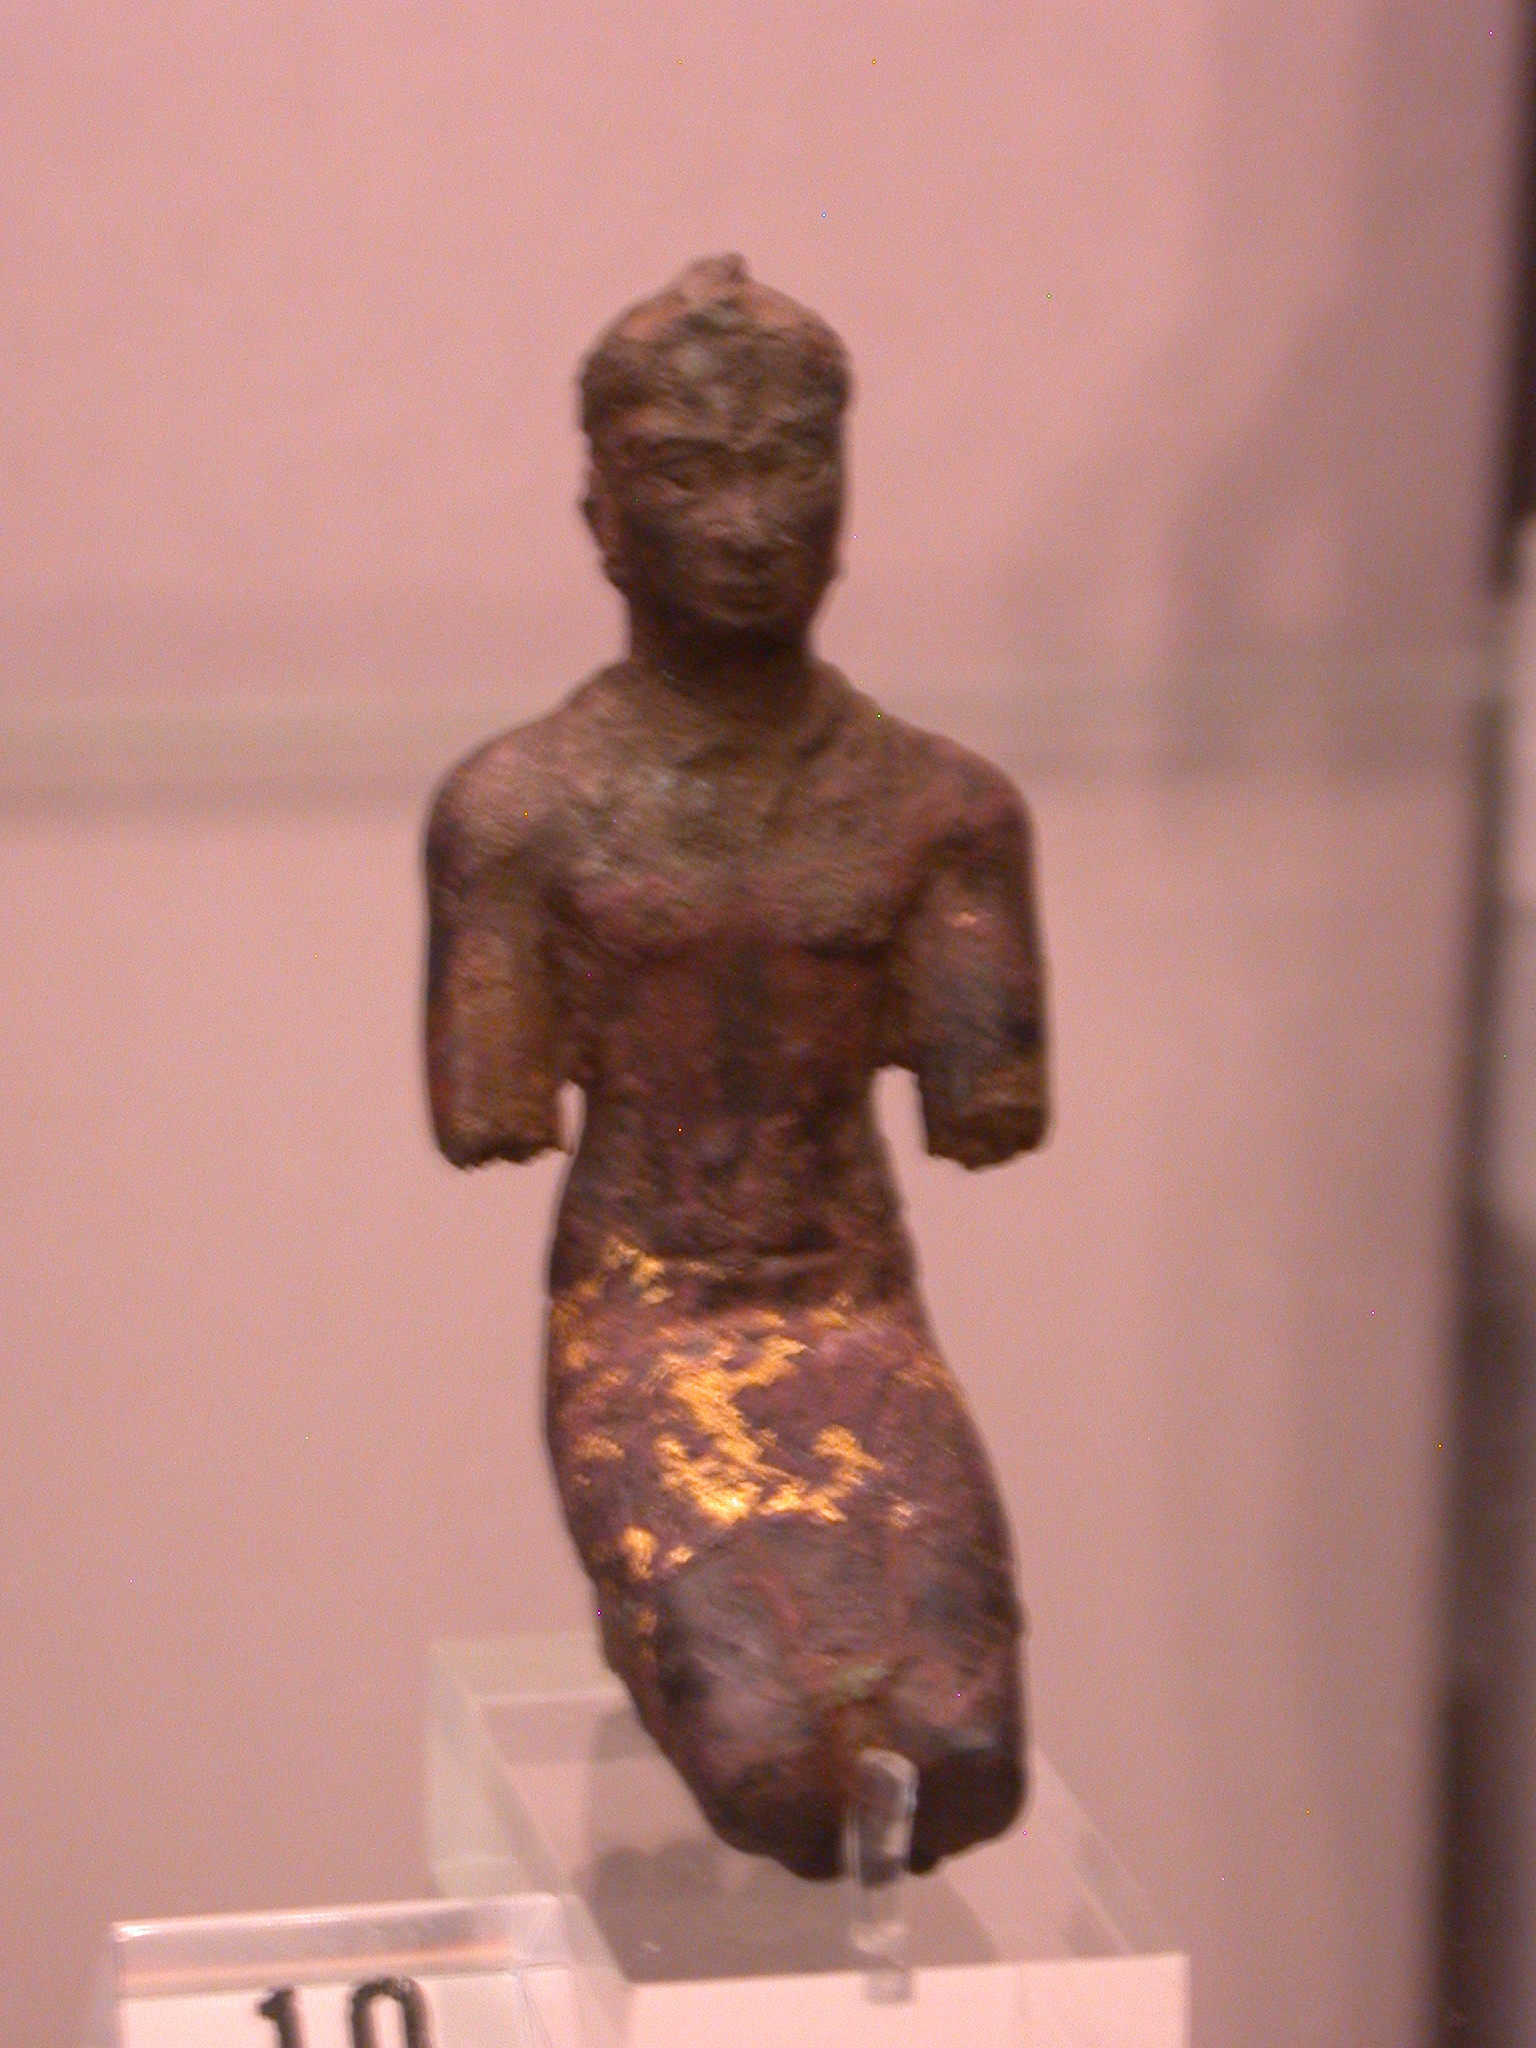 Figurine Probably of Taharqa, Copper Alloy, 25th Dynasty, Probably 690-664 BCE, Egypt, in Fitzwilliam Museum, Cambridge, England